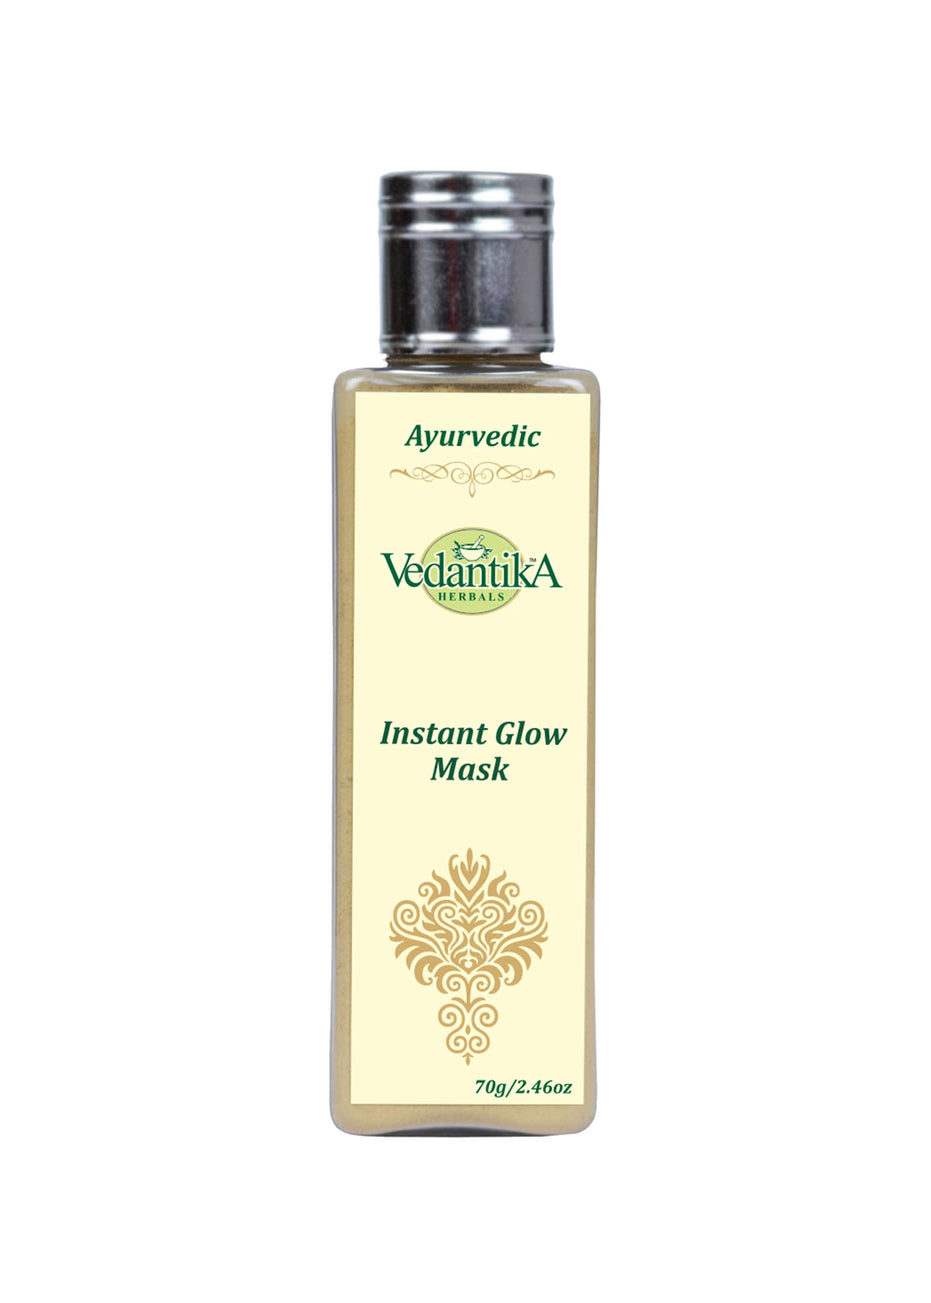 Vedantika Herbals Instant Glow Mask, Face Pack, Vedantika Herbals, ihaat, [made_in_india], [handmade] - ihaat